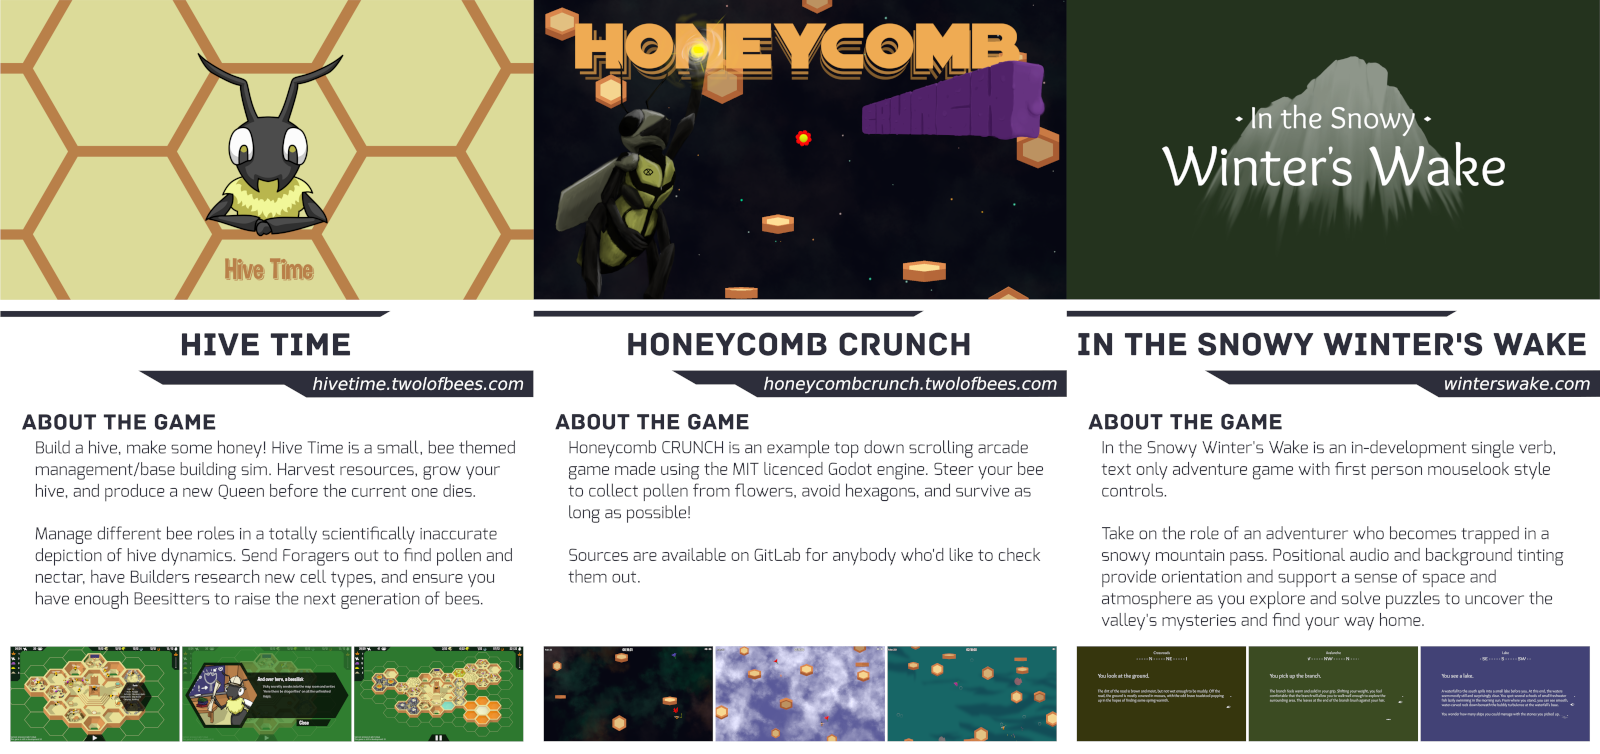 Flyers or Hive Time, Honeycomb CRUNCH and Winter's Wake